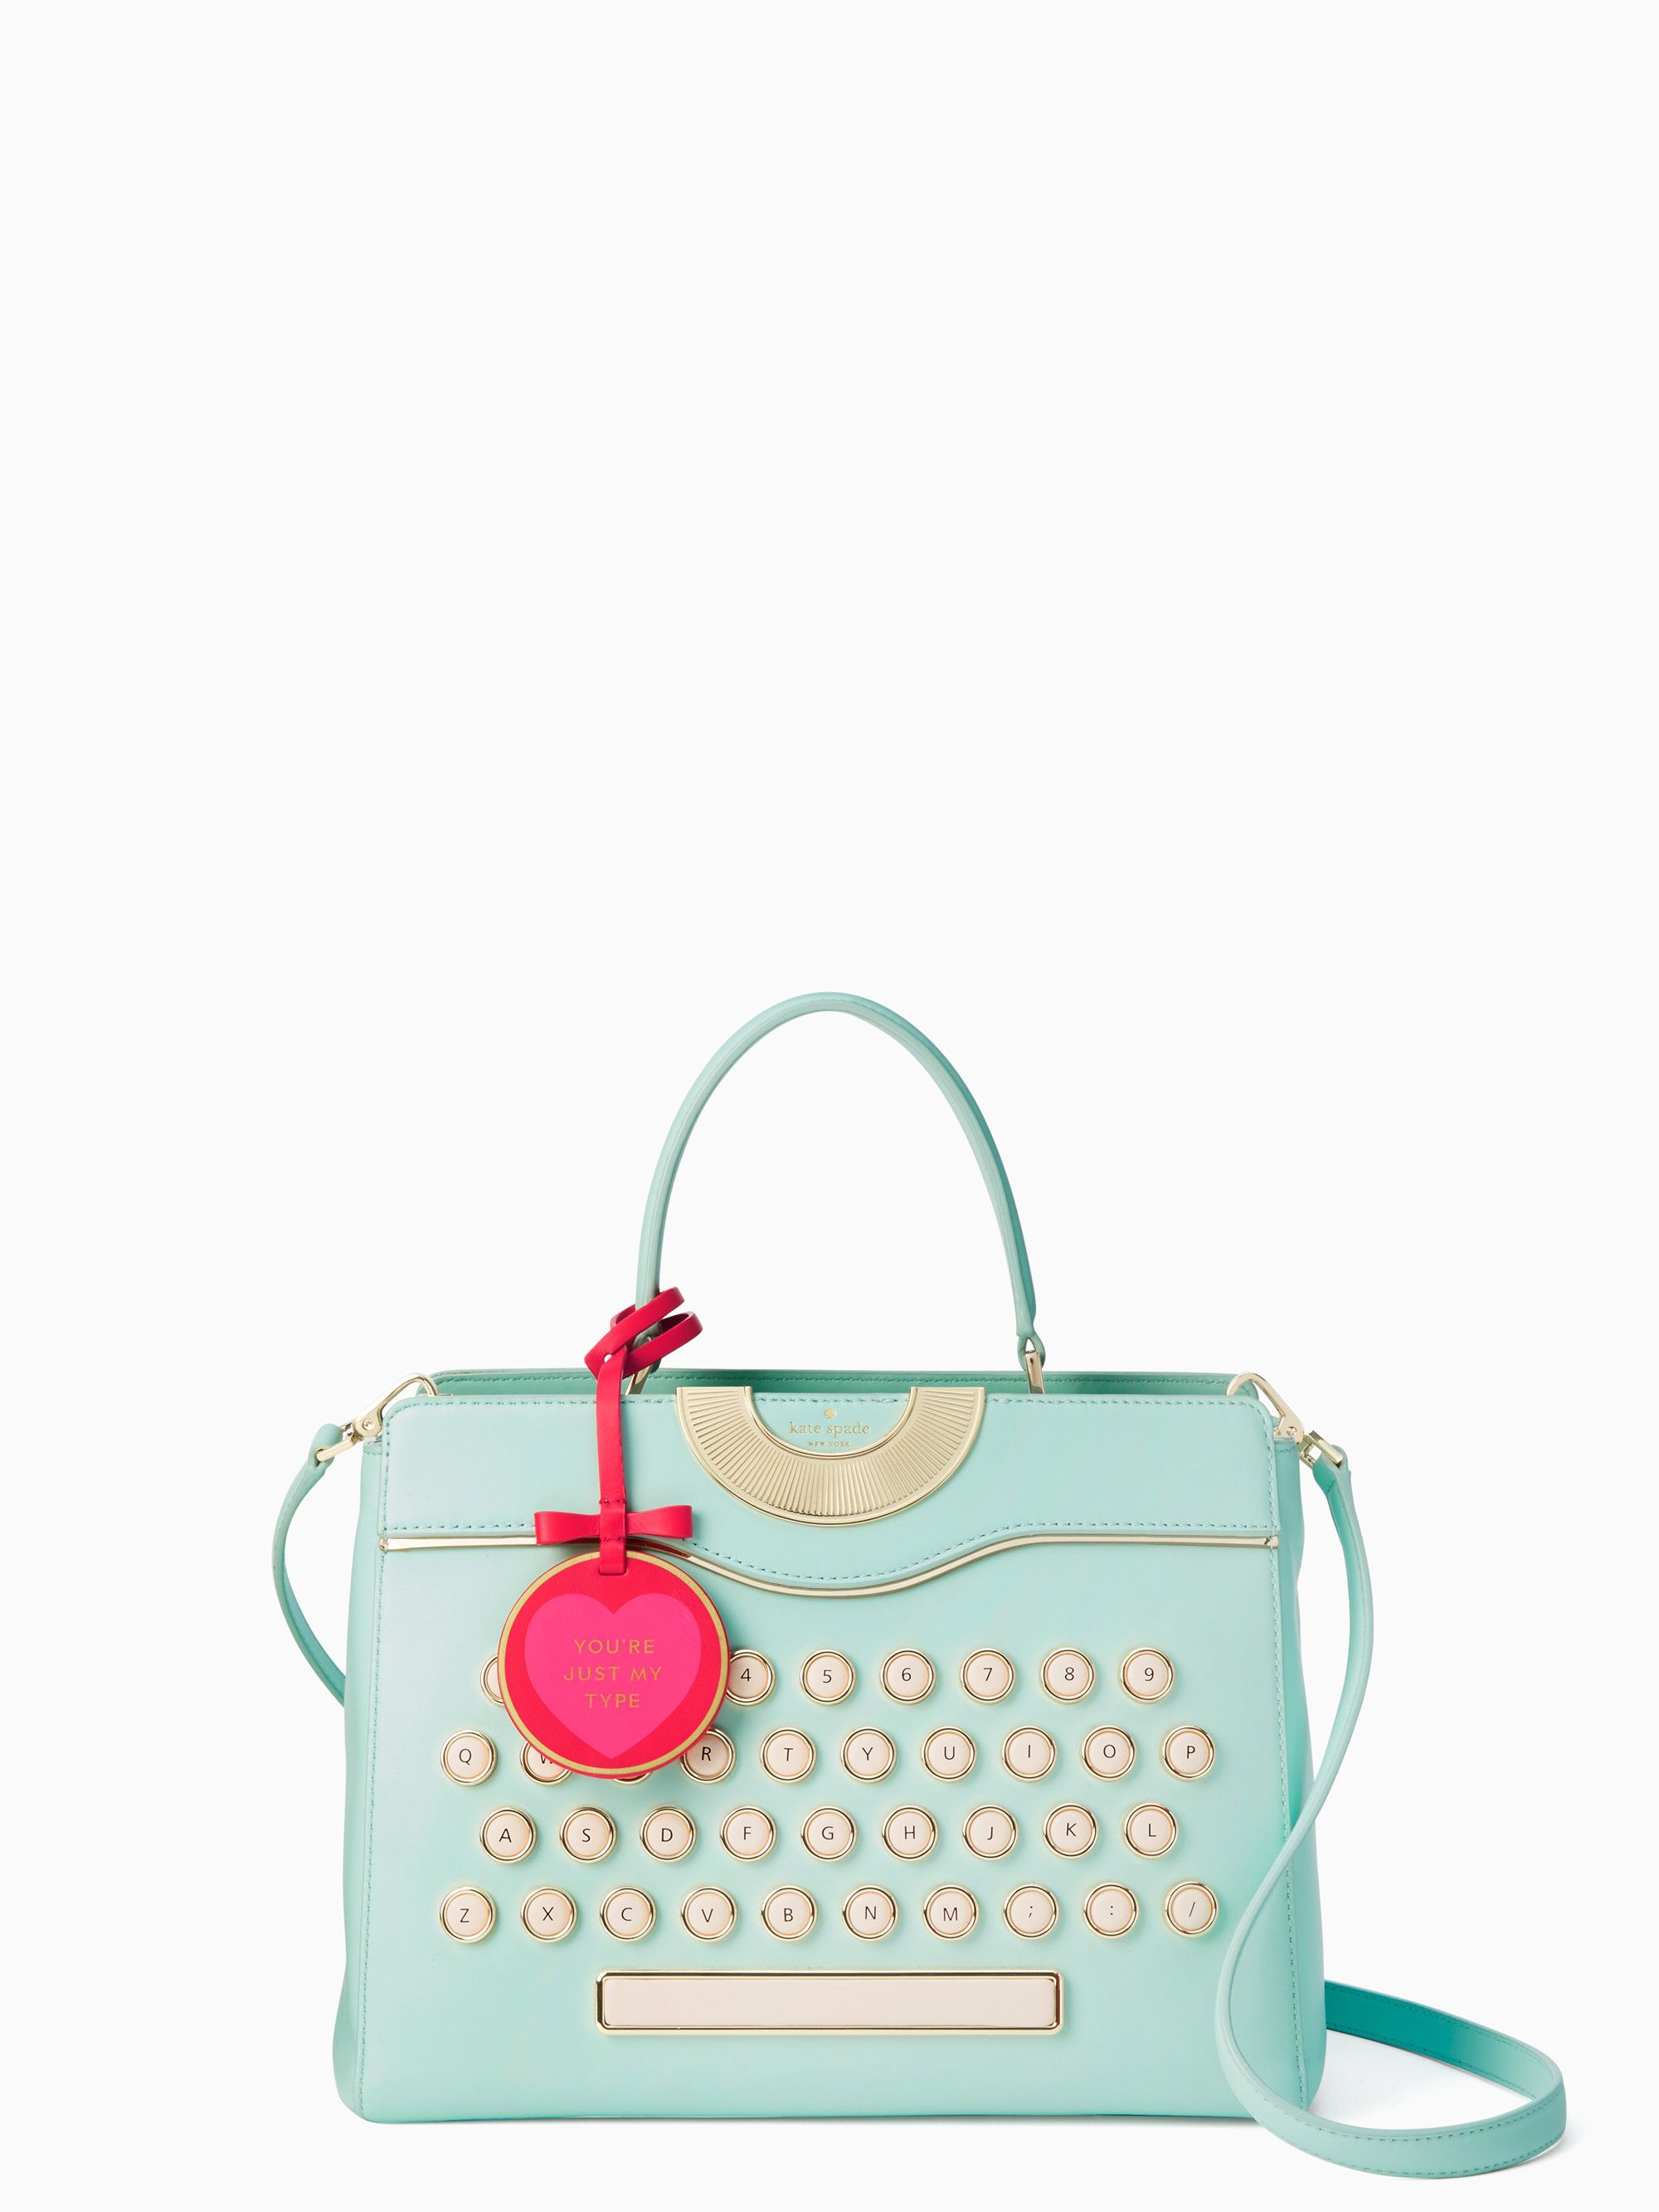 Pin By Katie Oshea On My Style In 2018 Pinterest Kate Spade